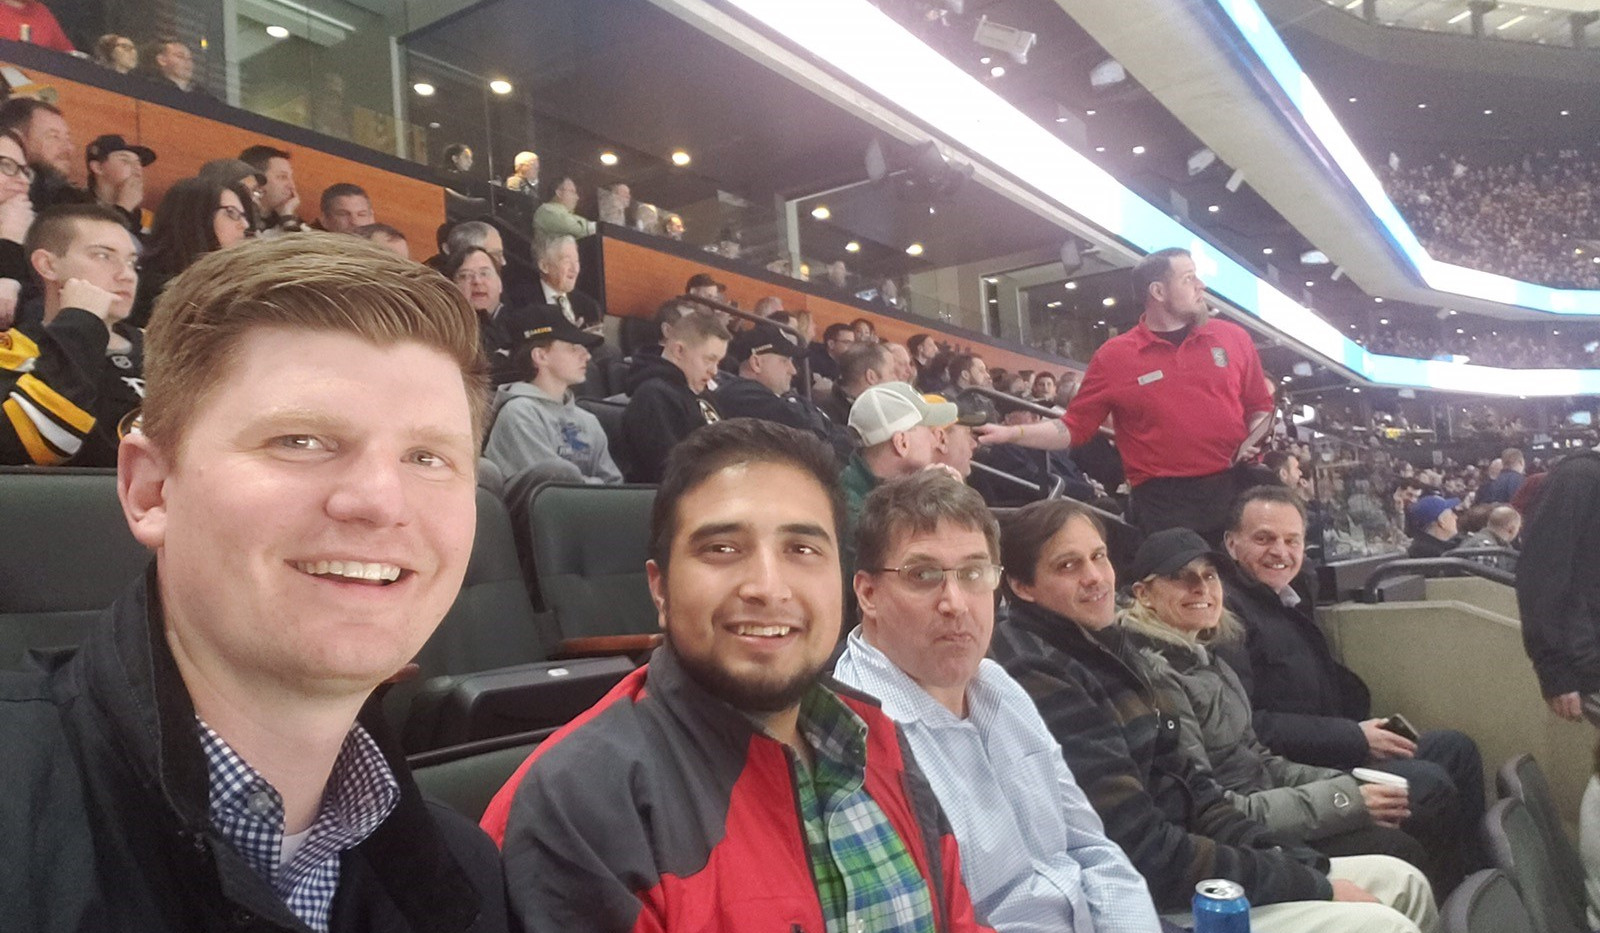 PA Staff at the Bruins/Rangers game – 3/27/19